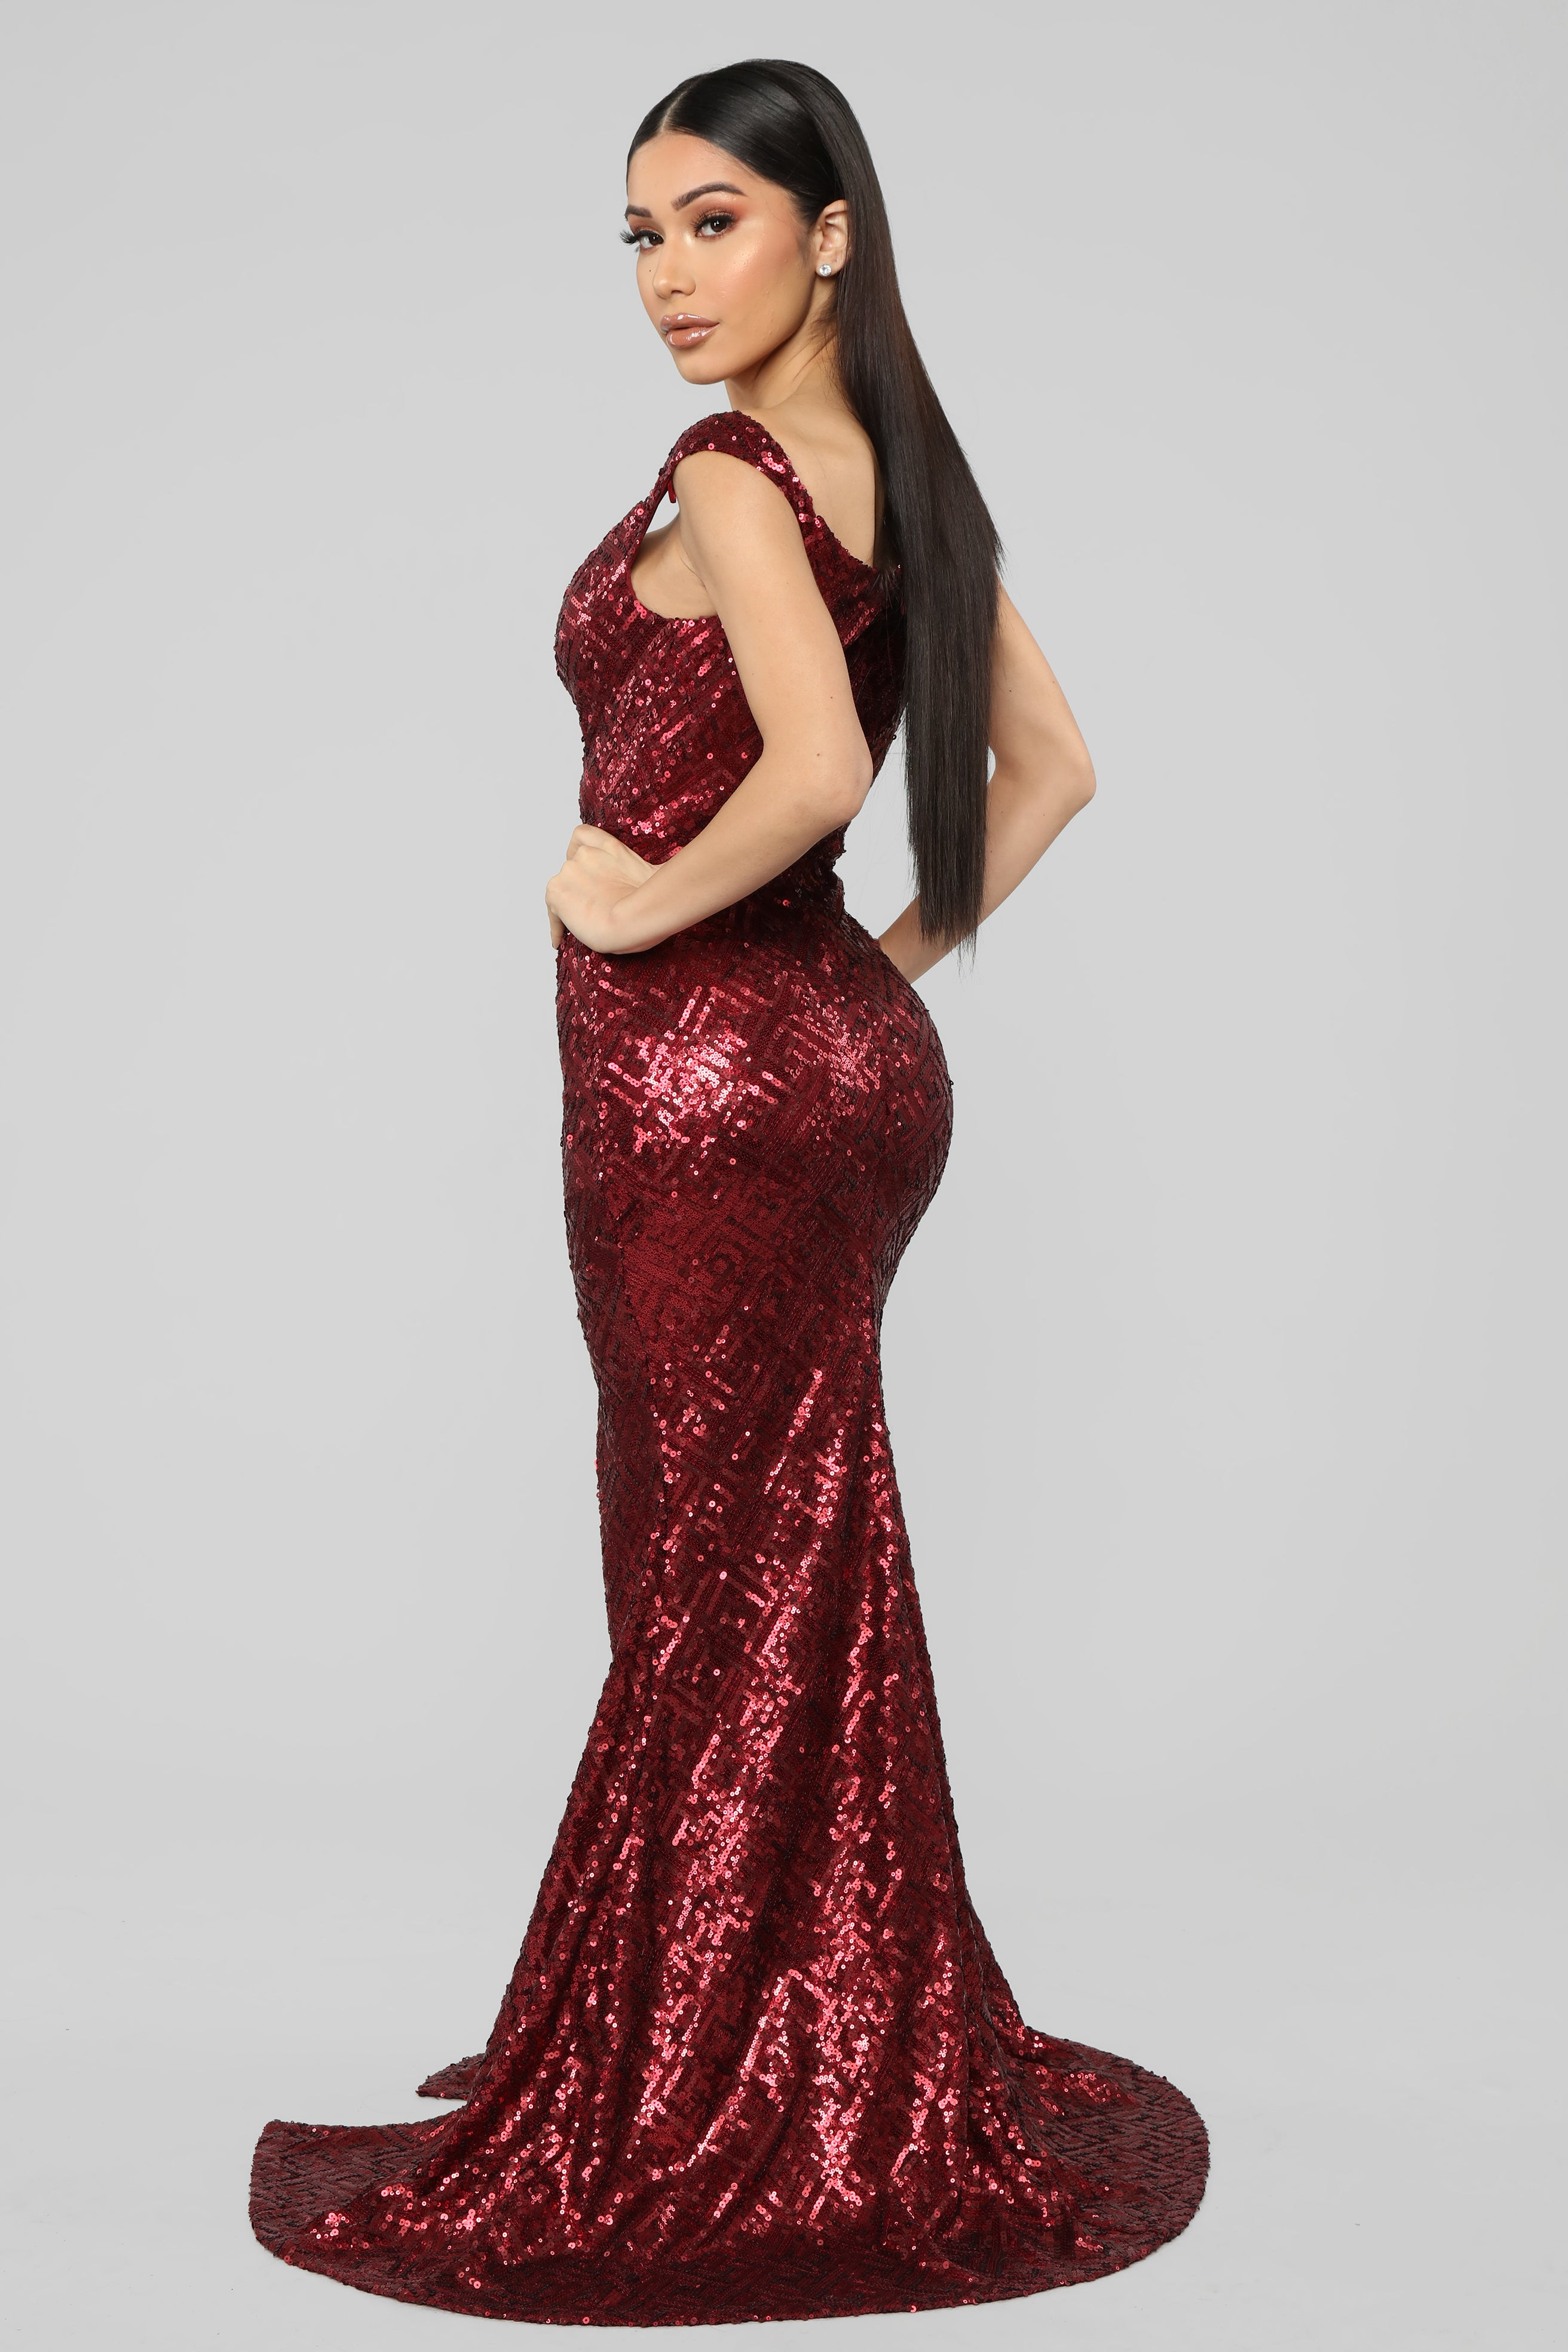 034a9c45 I'll Be Your Queen Sequin Maxi Dress - Burgundy